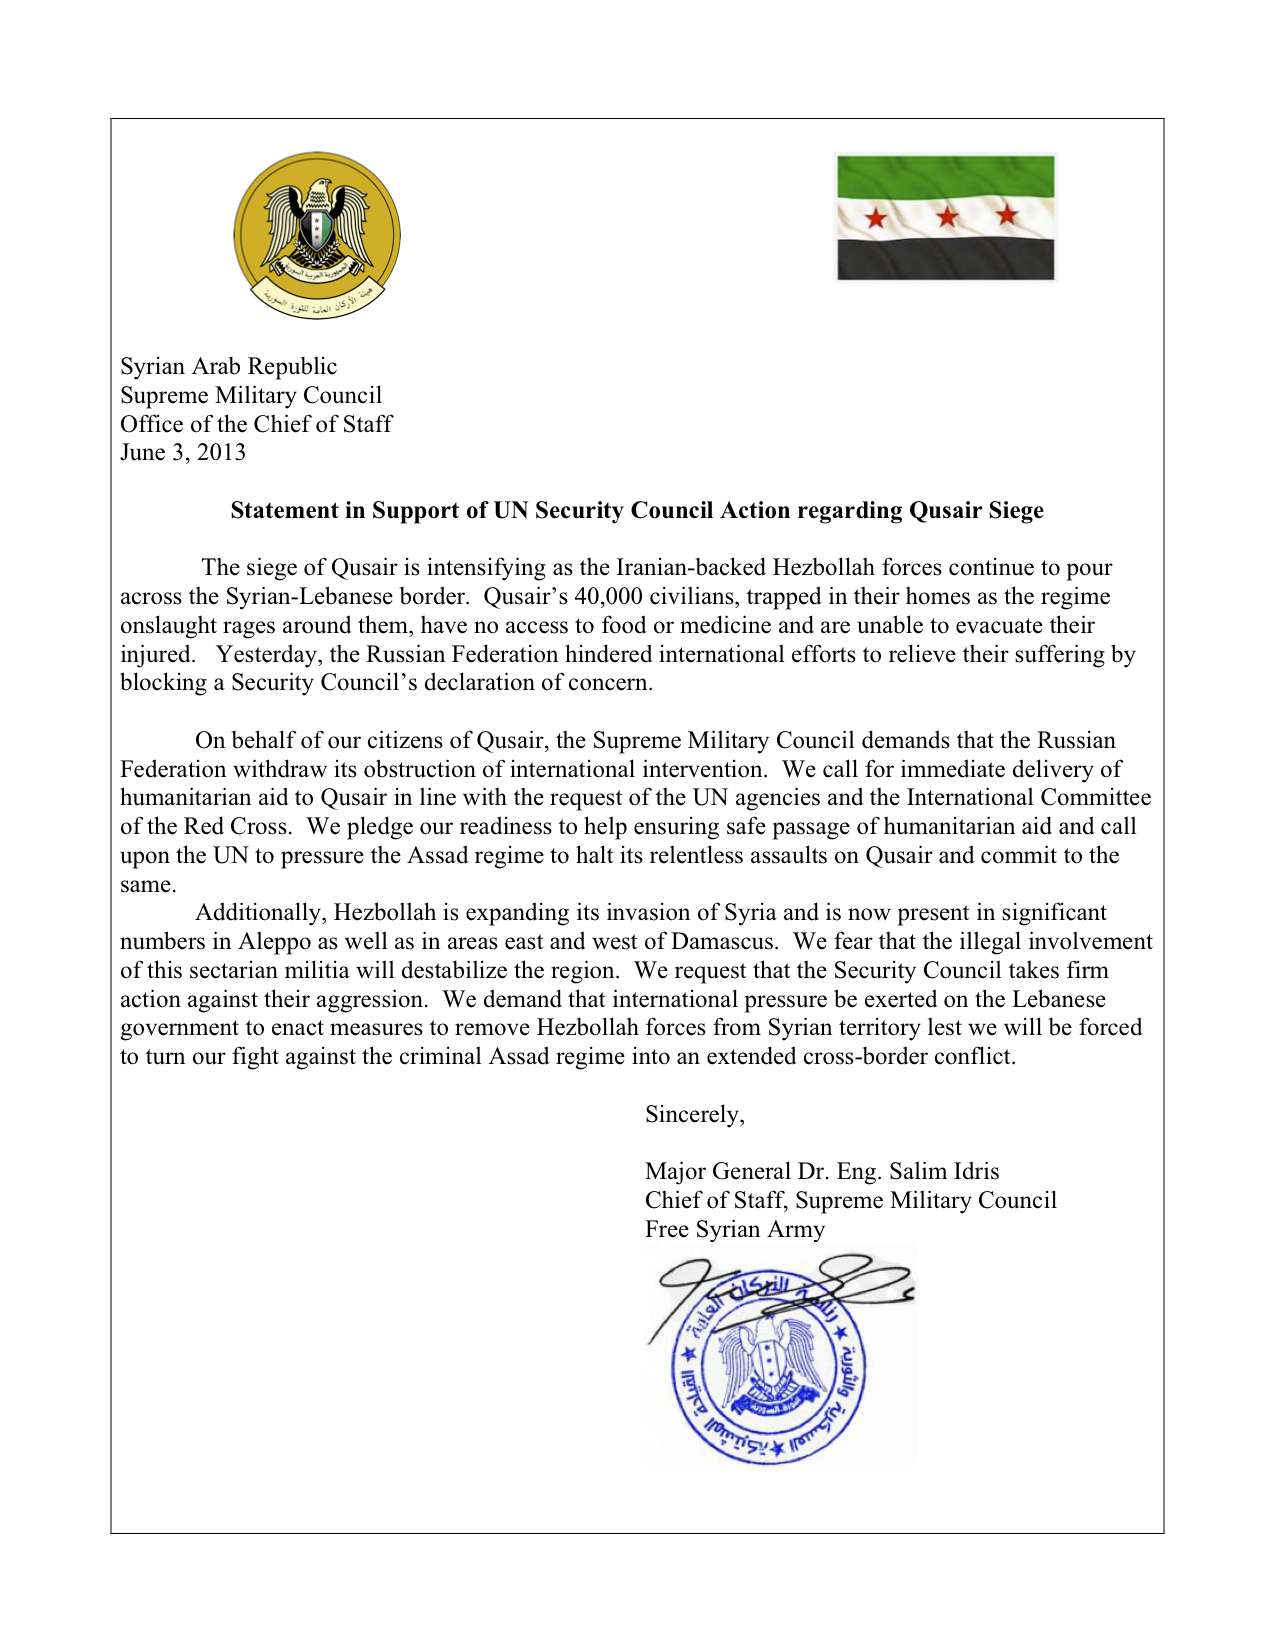 General Idris S Letter To The United Nations Security